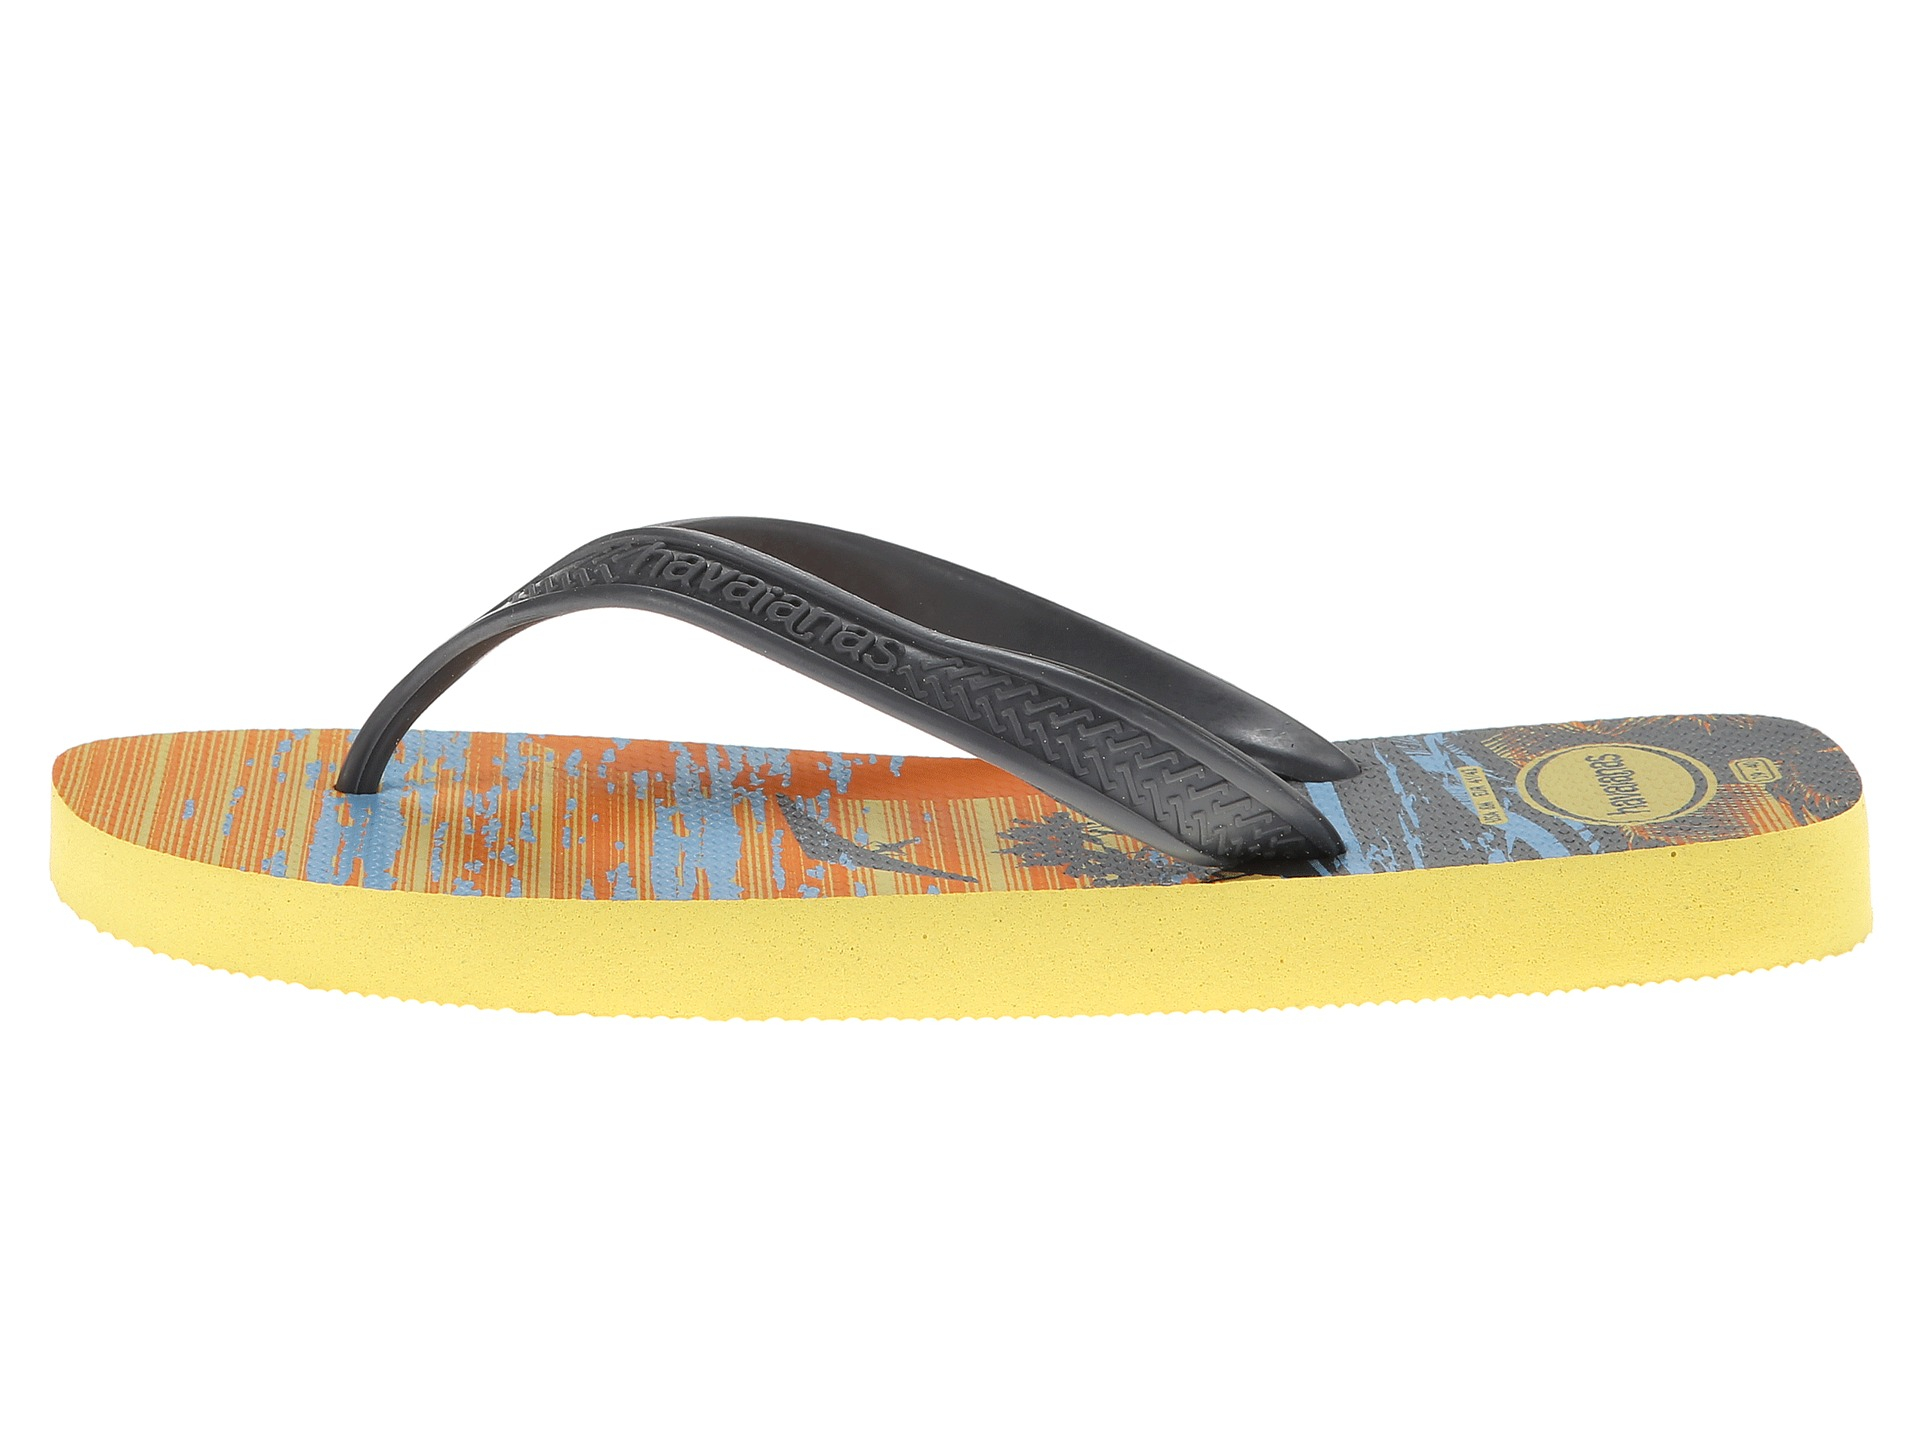 865d0ae2a851a Lyst - Havaianas Surf Flip Flops in Yellow for Men